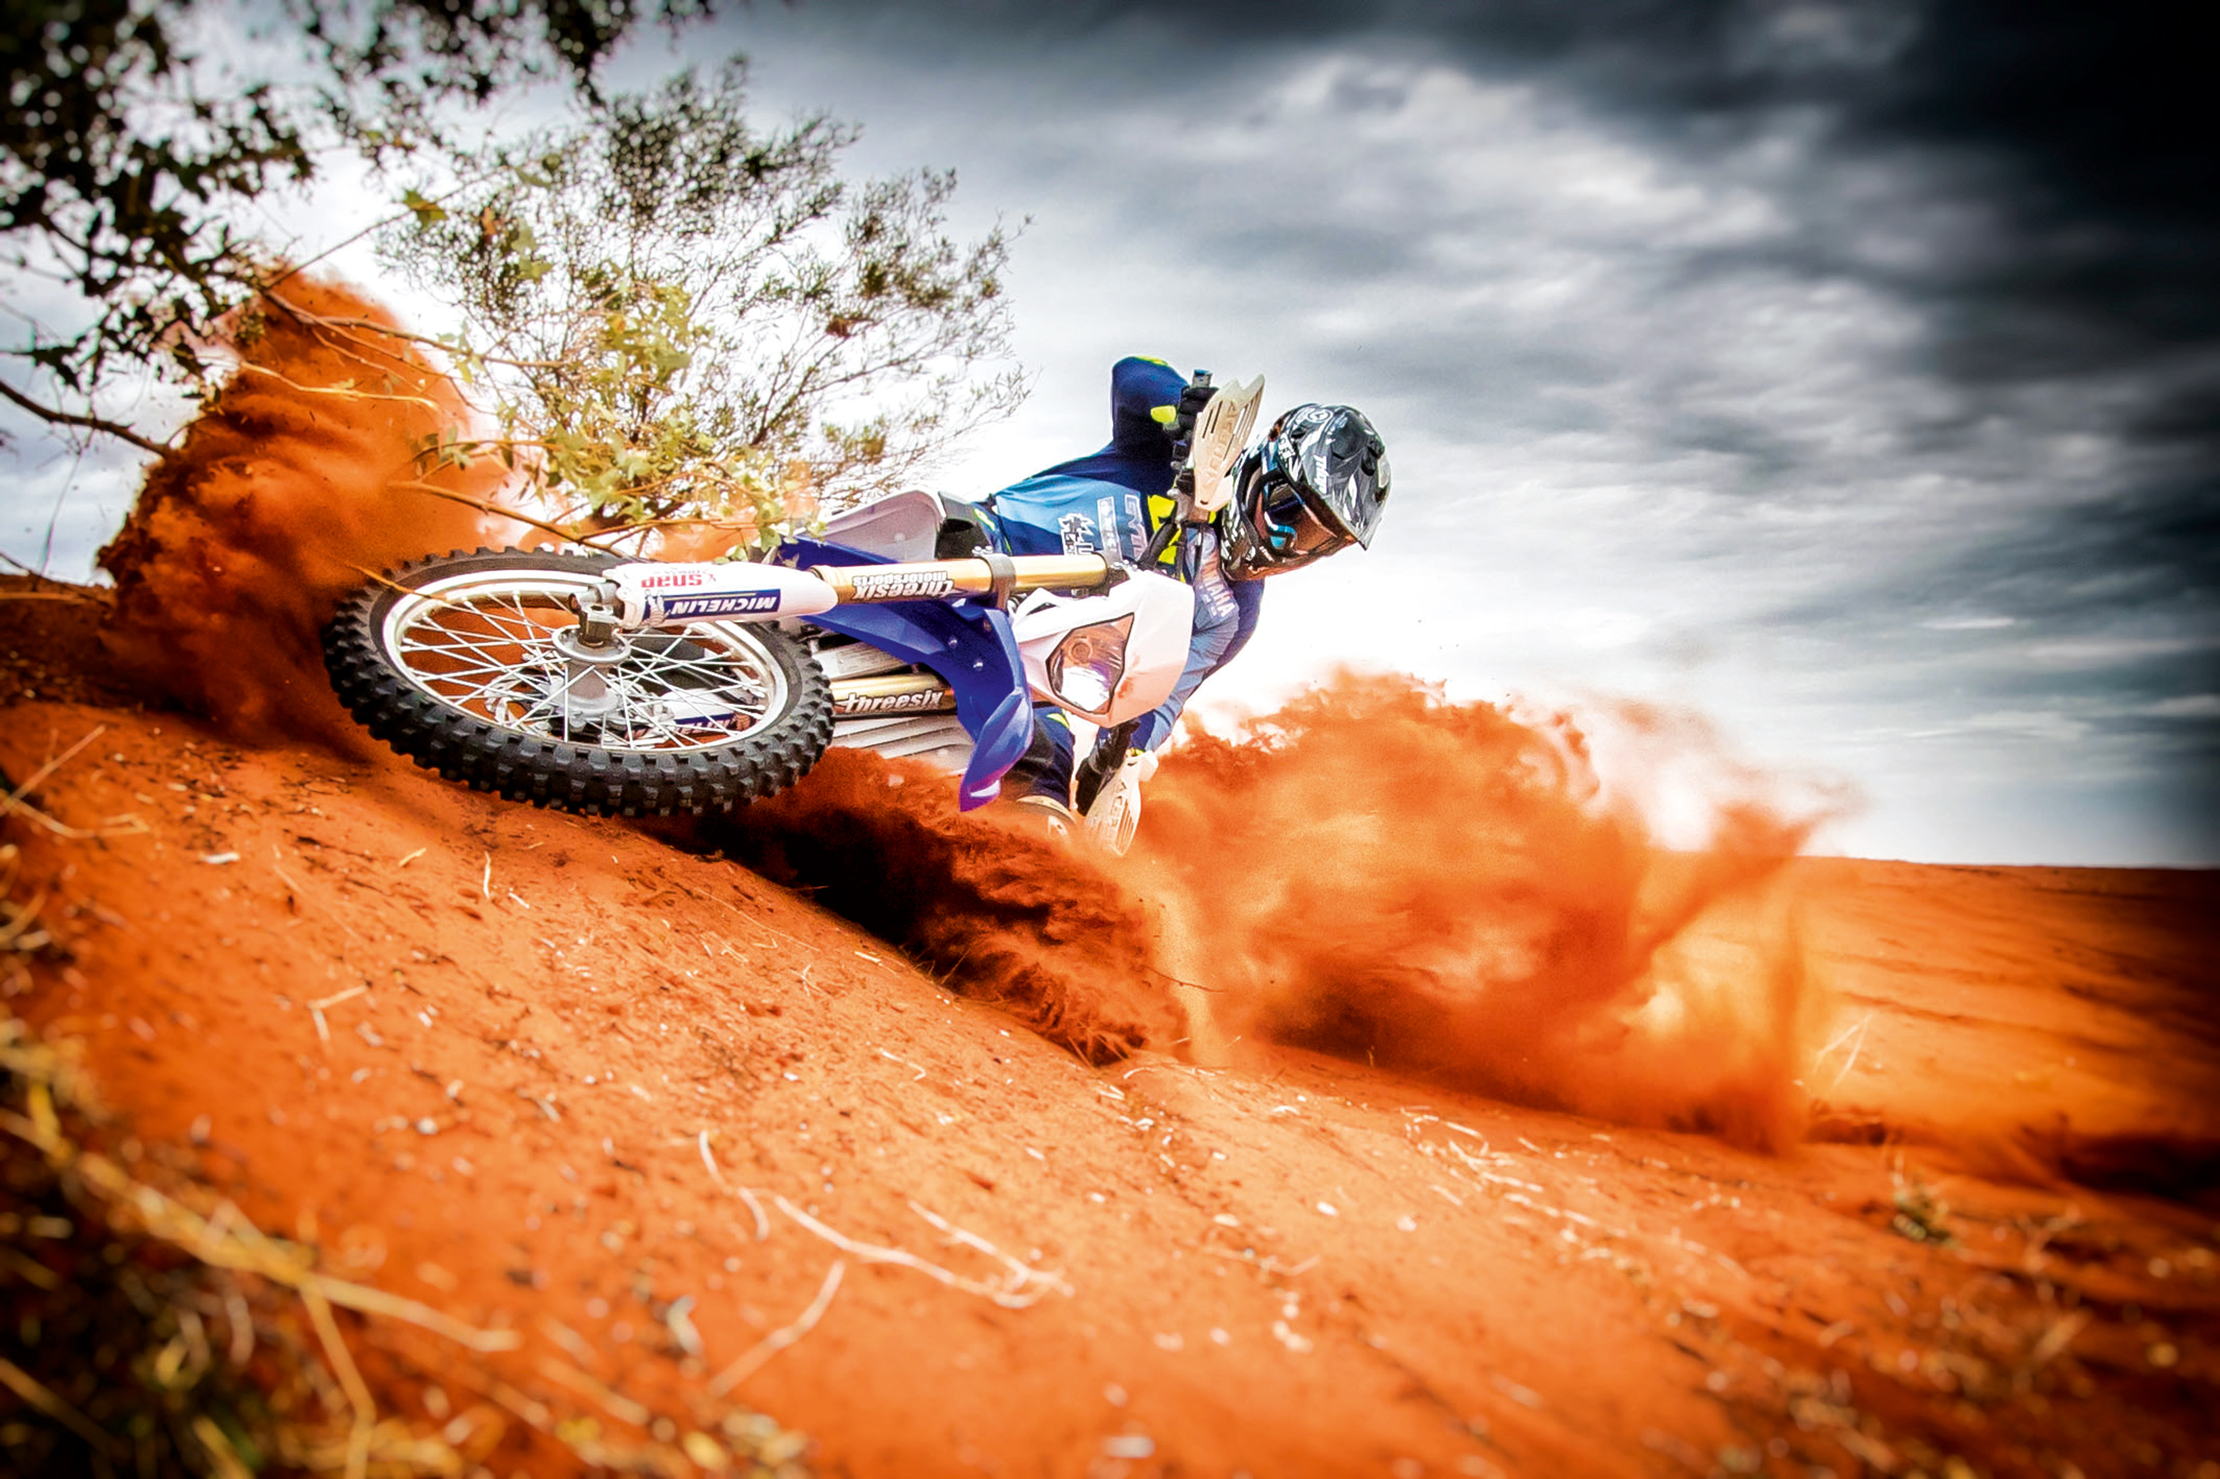 threats to the continued operation of dirt bikes s system 1 what are the most likely threats to the continued operation of dirt bikes' systems 2 what would you identify as dirt bikes' most critical systems.